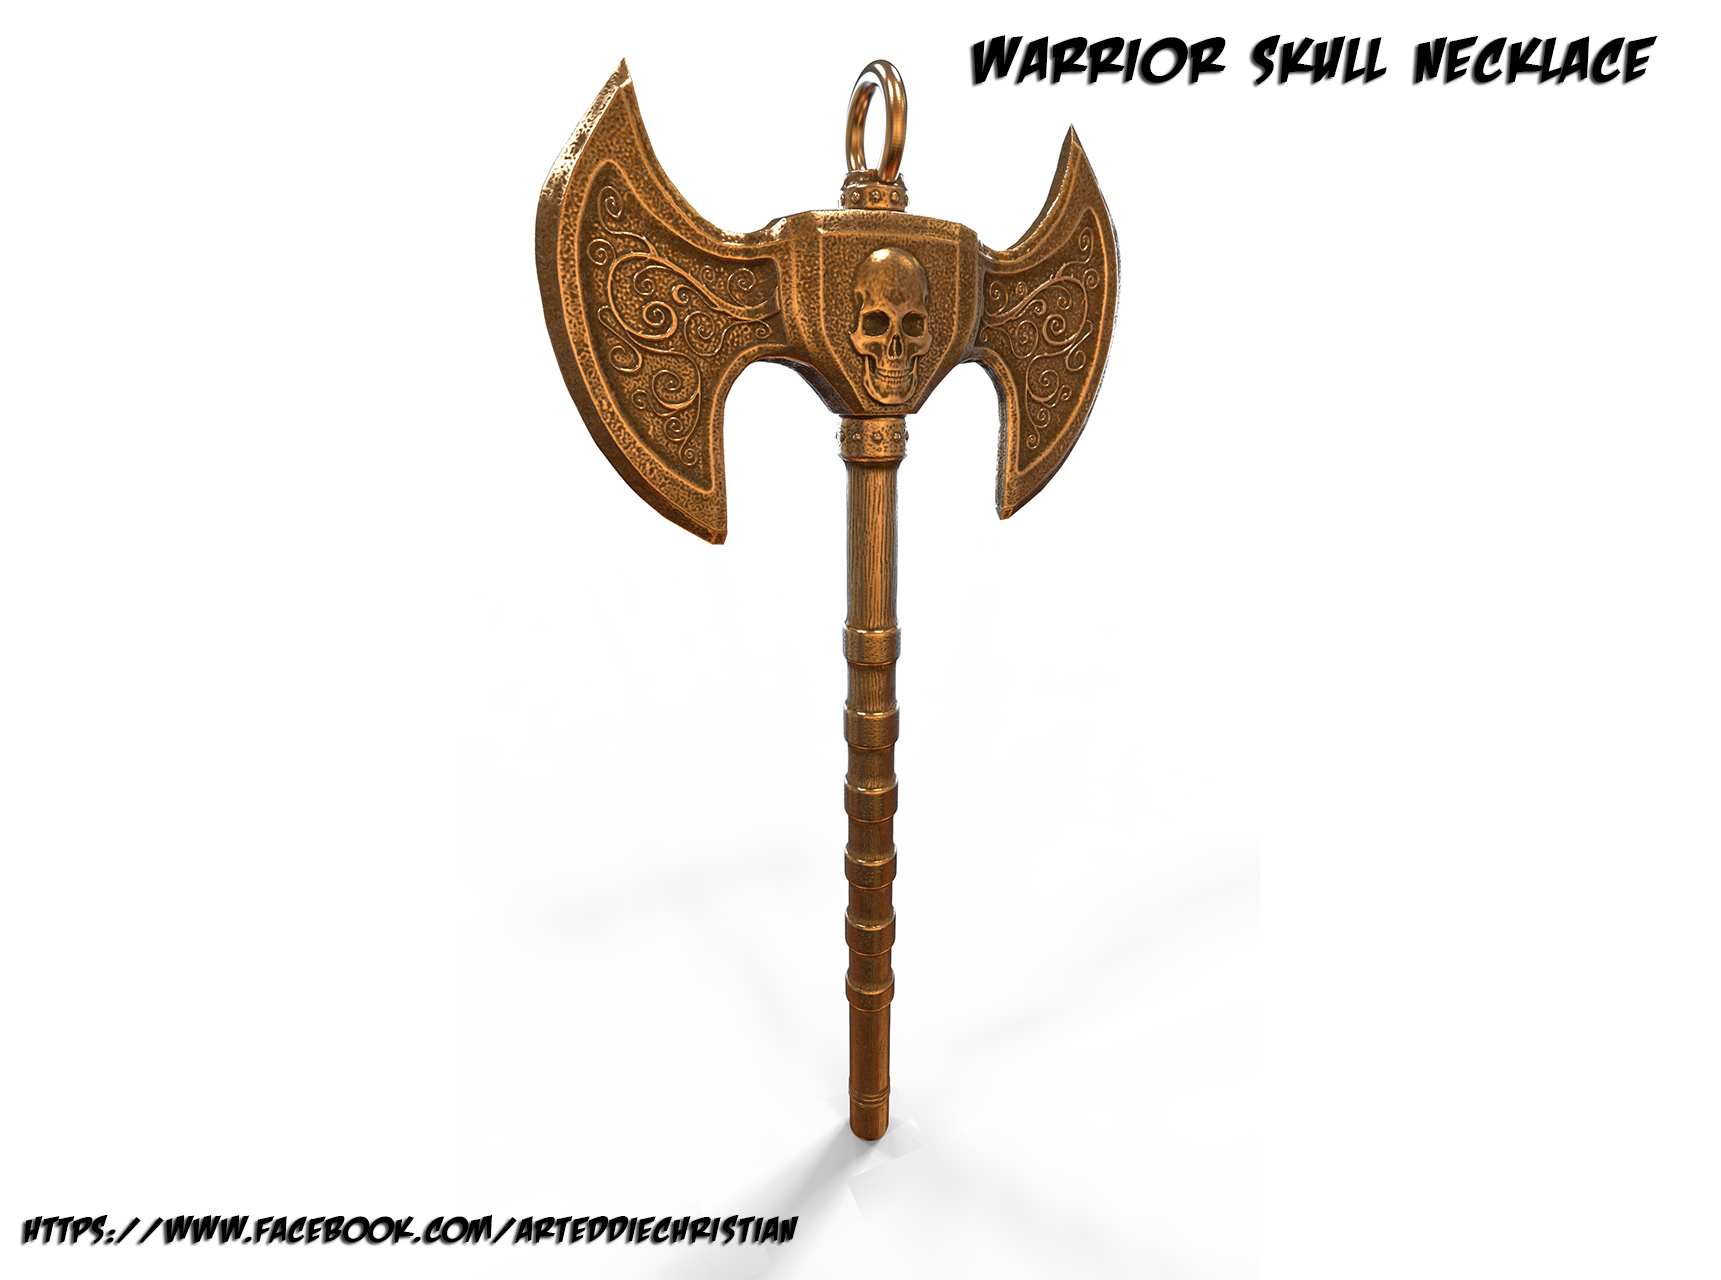 Warriors-Skull-Necklace-PROMO-LARGE.jpg